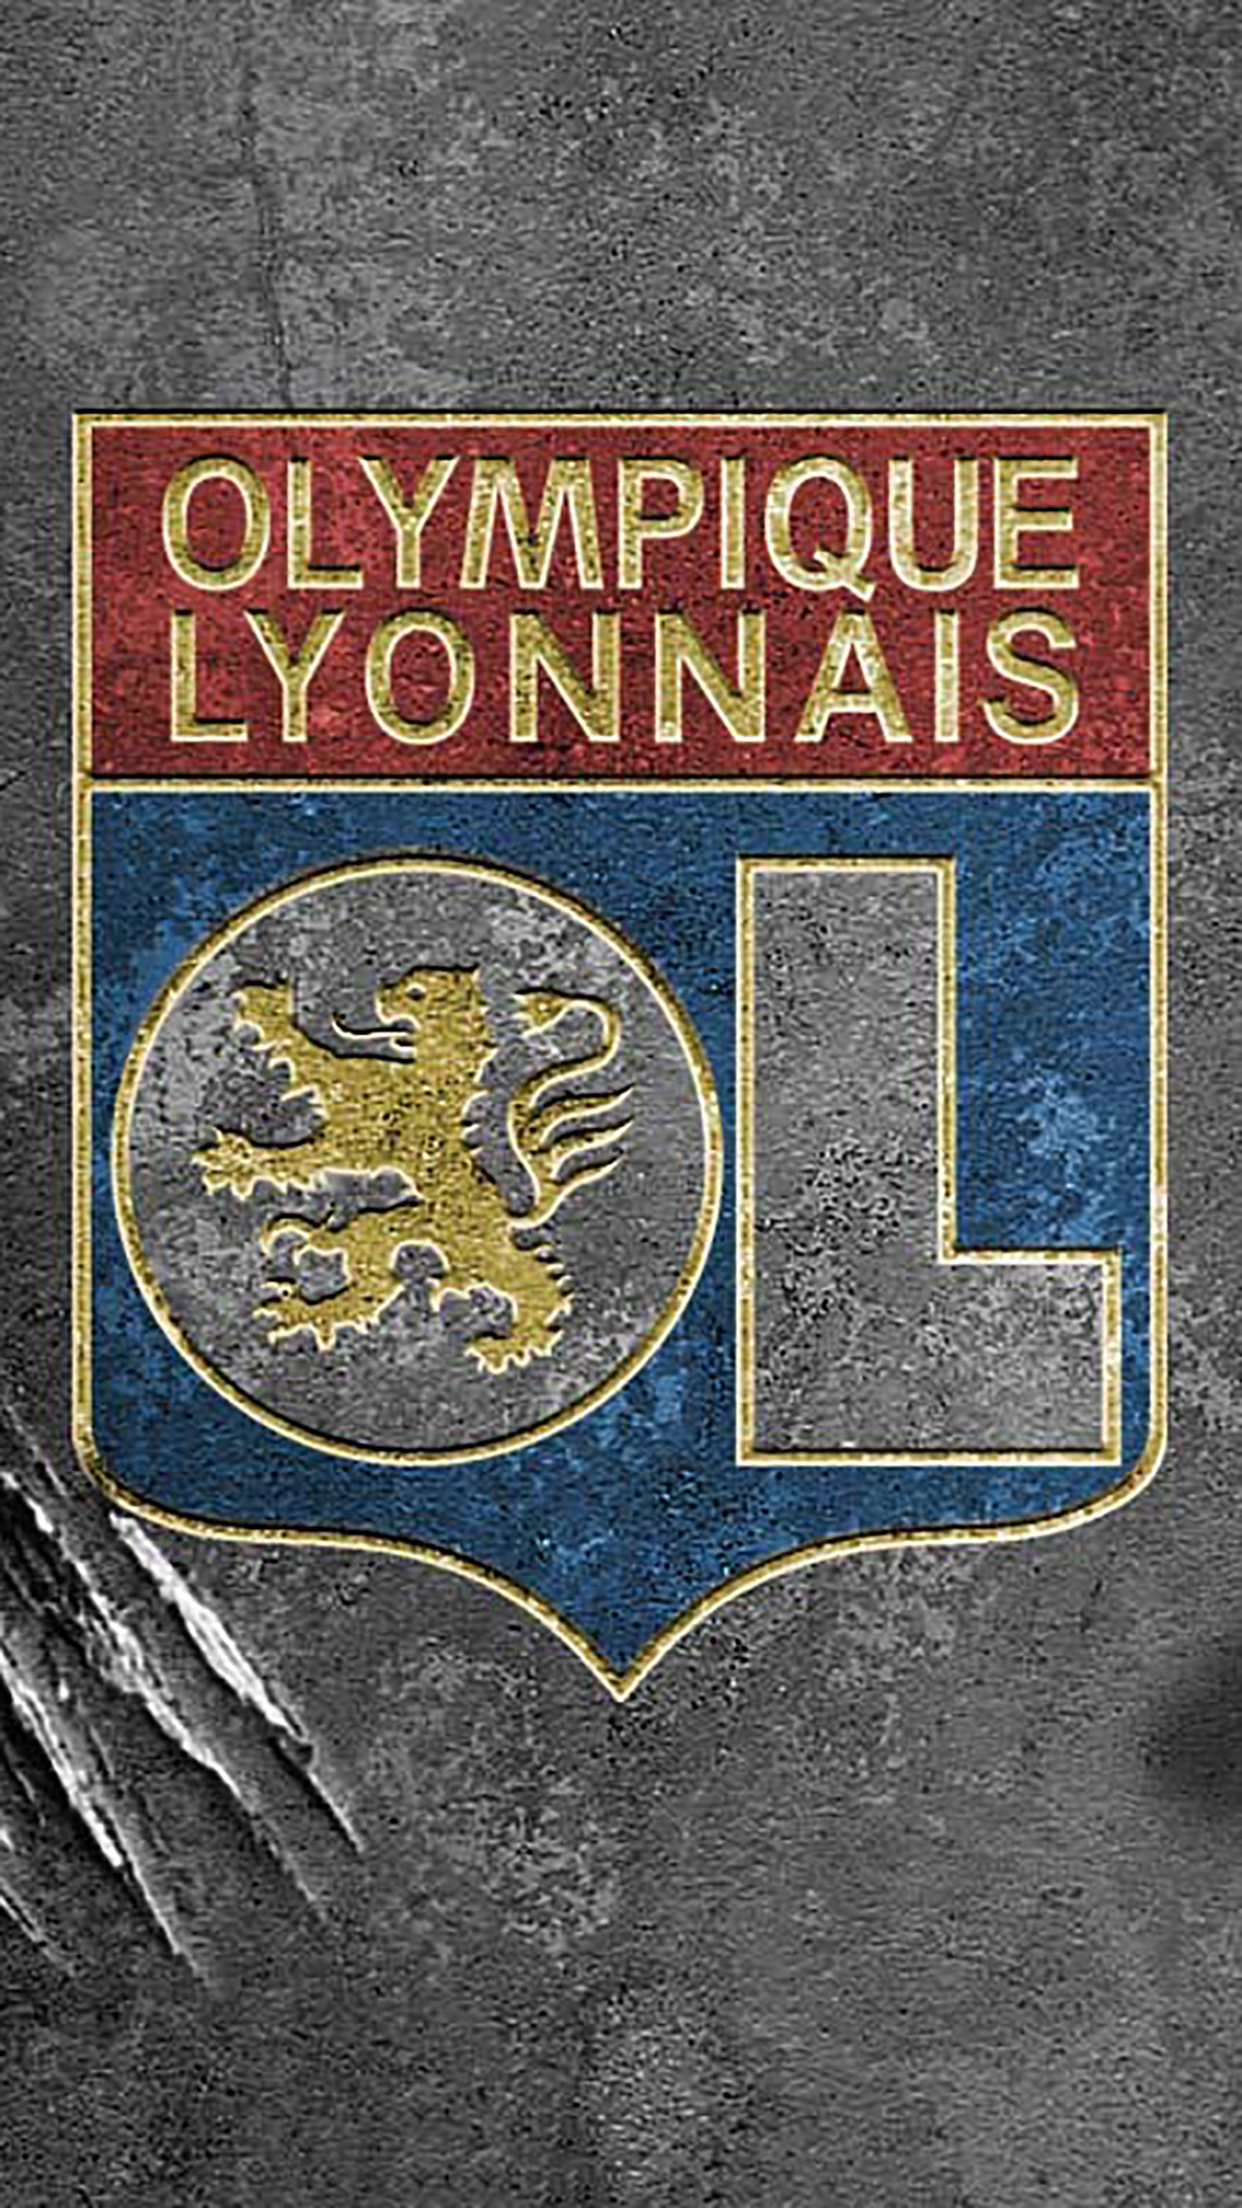 Free Download Olympique Lyonnais Logo 2 Wallpaper For Iphone X 8 7 6 1242x2208 For Your Desktop Mobile Tablet Explore 36 Olympique Lyonnais Wallpapers Olympique Lyonnais Wallpapers Olympique De Marseille Wallpapers